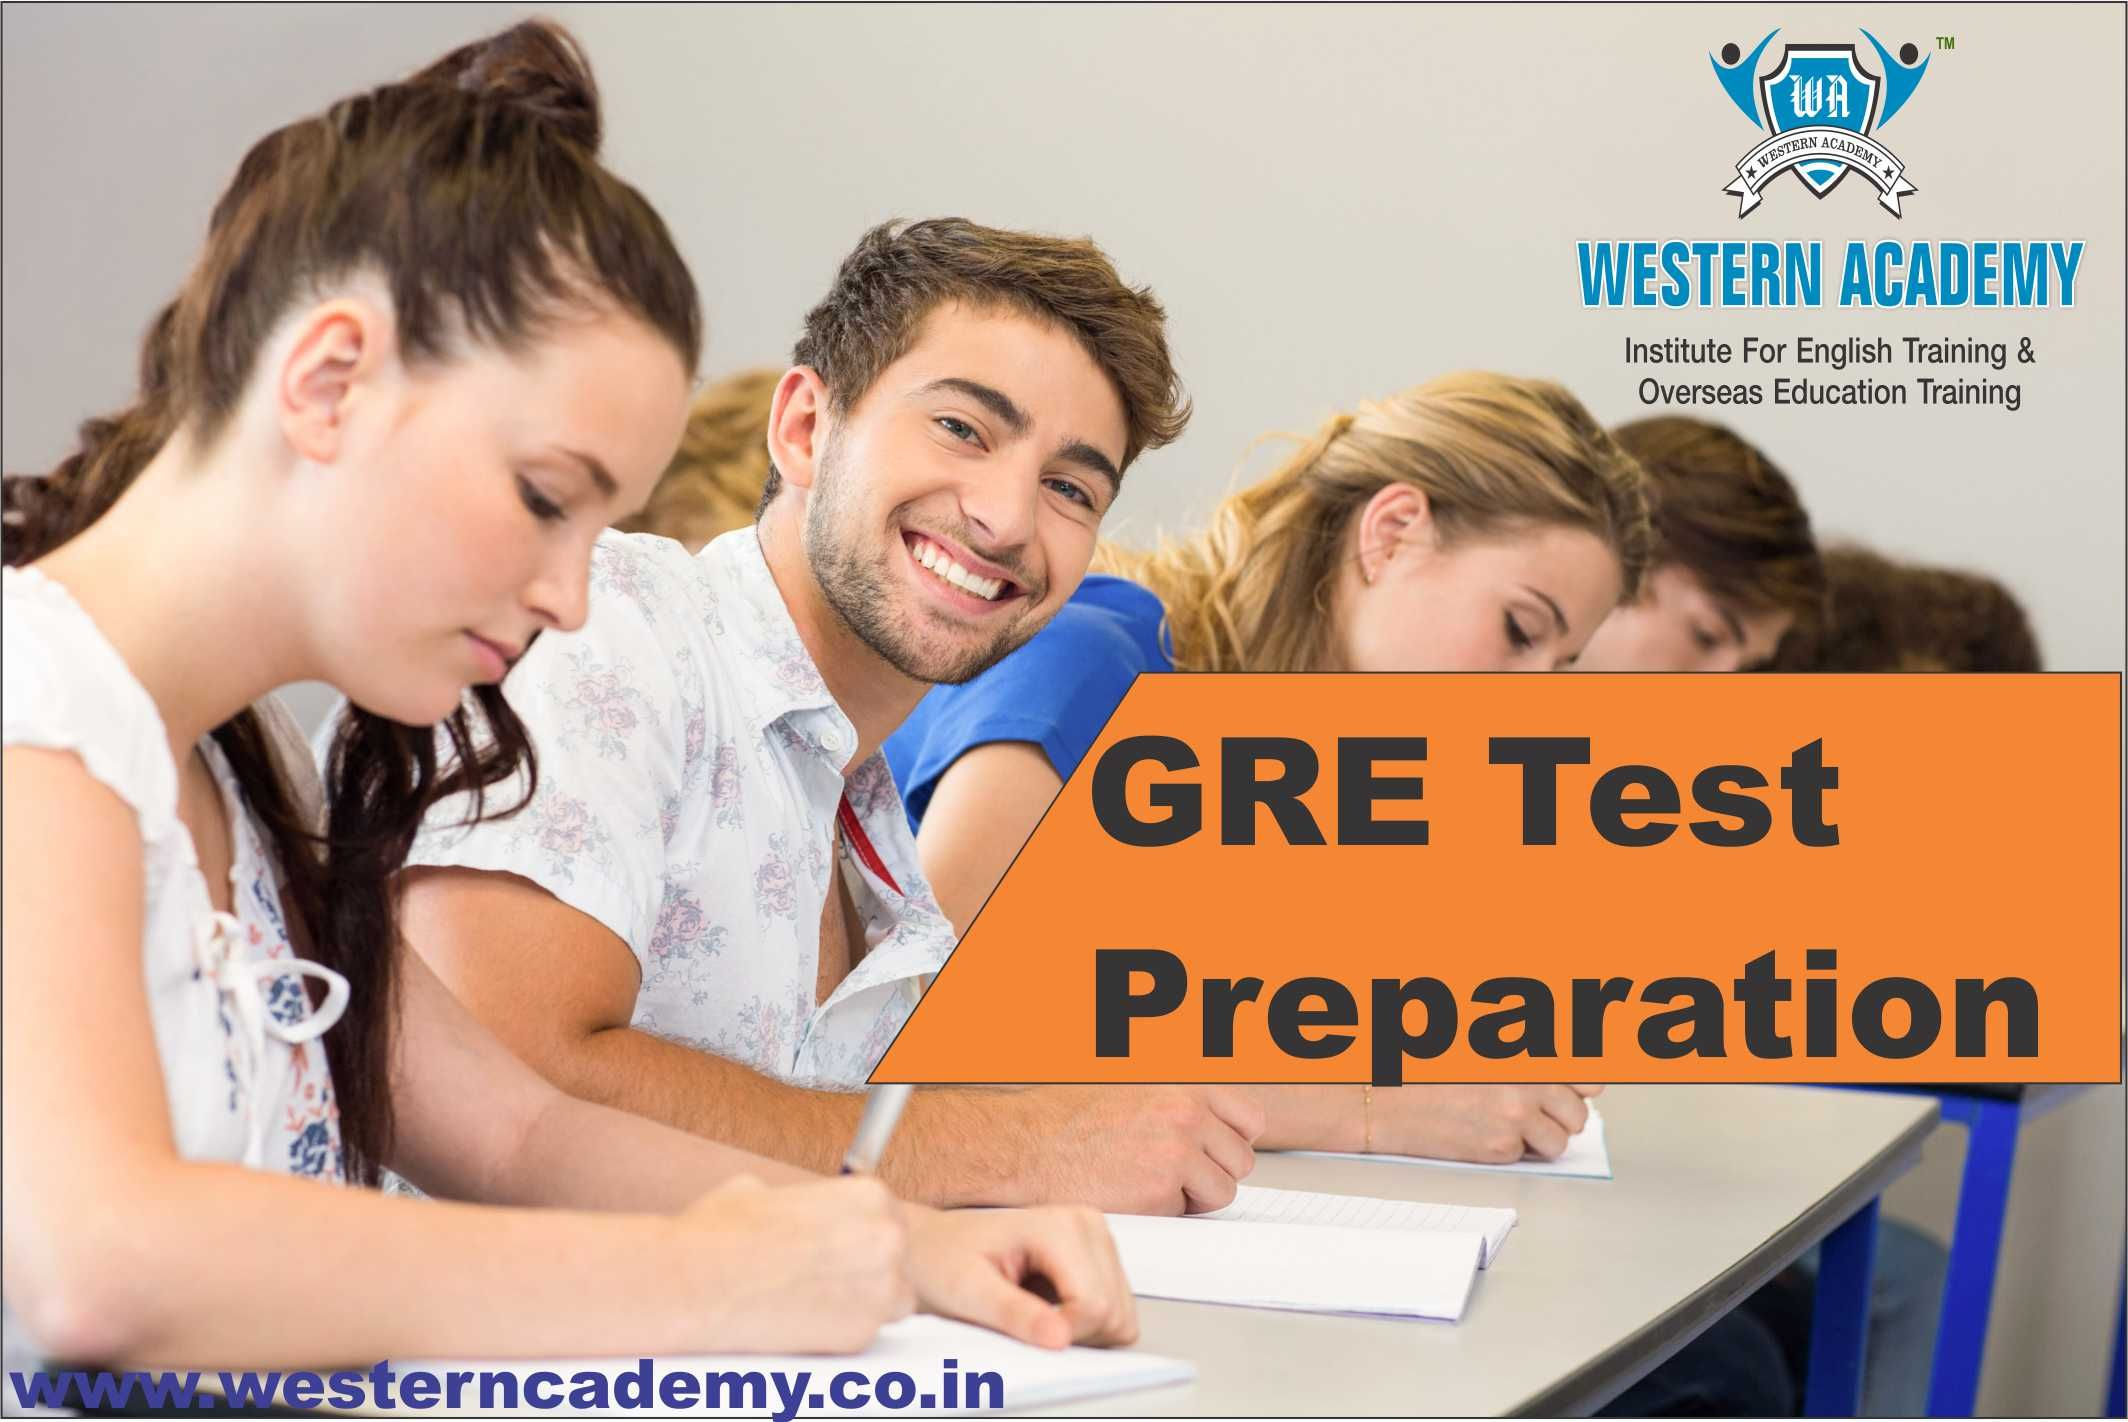 Graduate record examination gre is conducted by